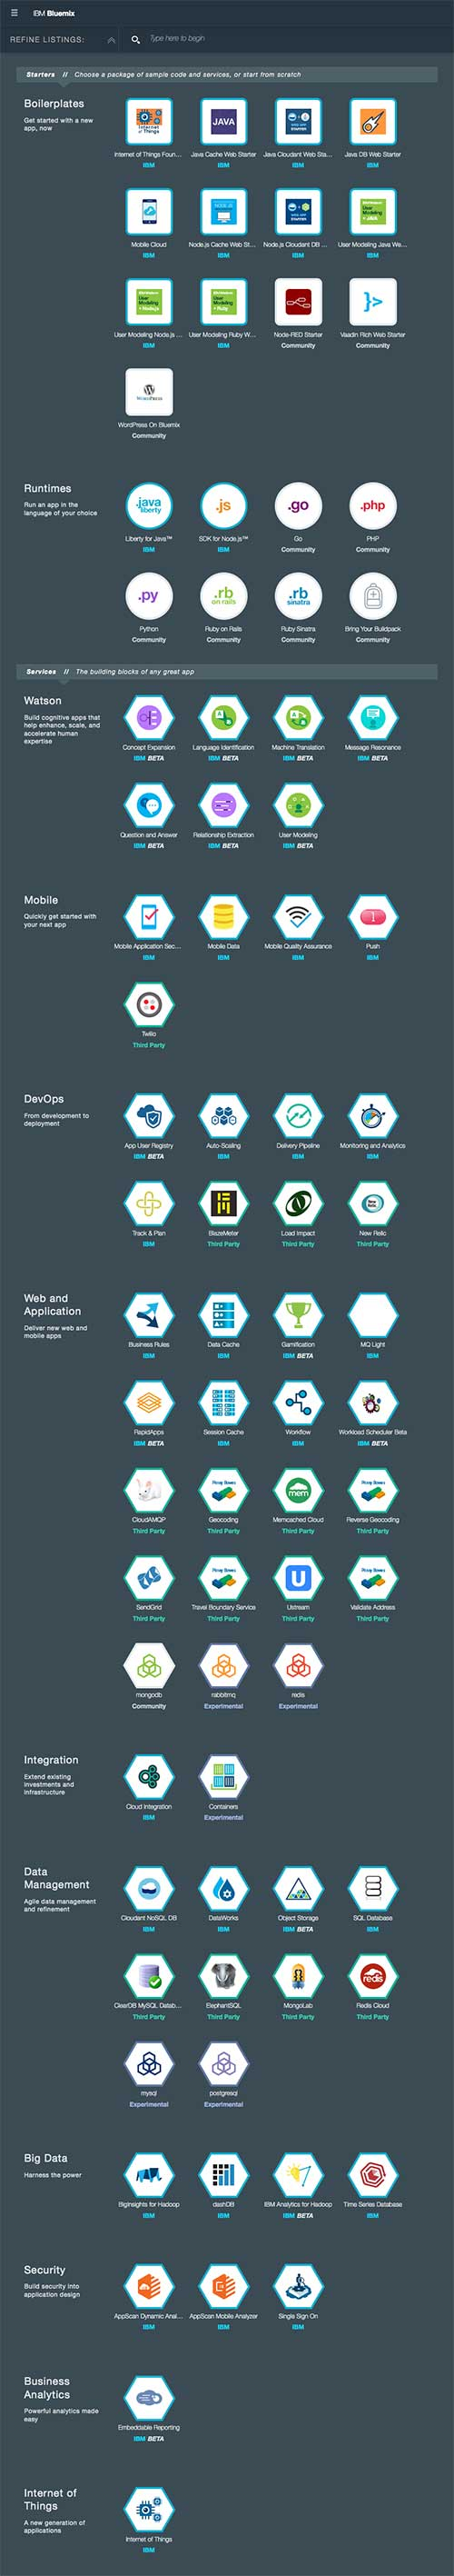 IBM BlueMix Services